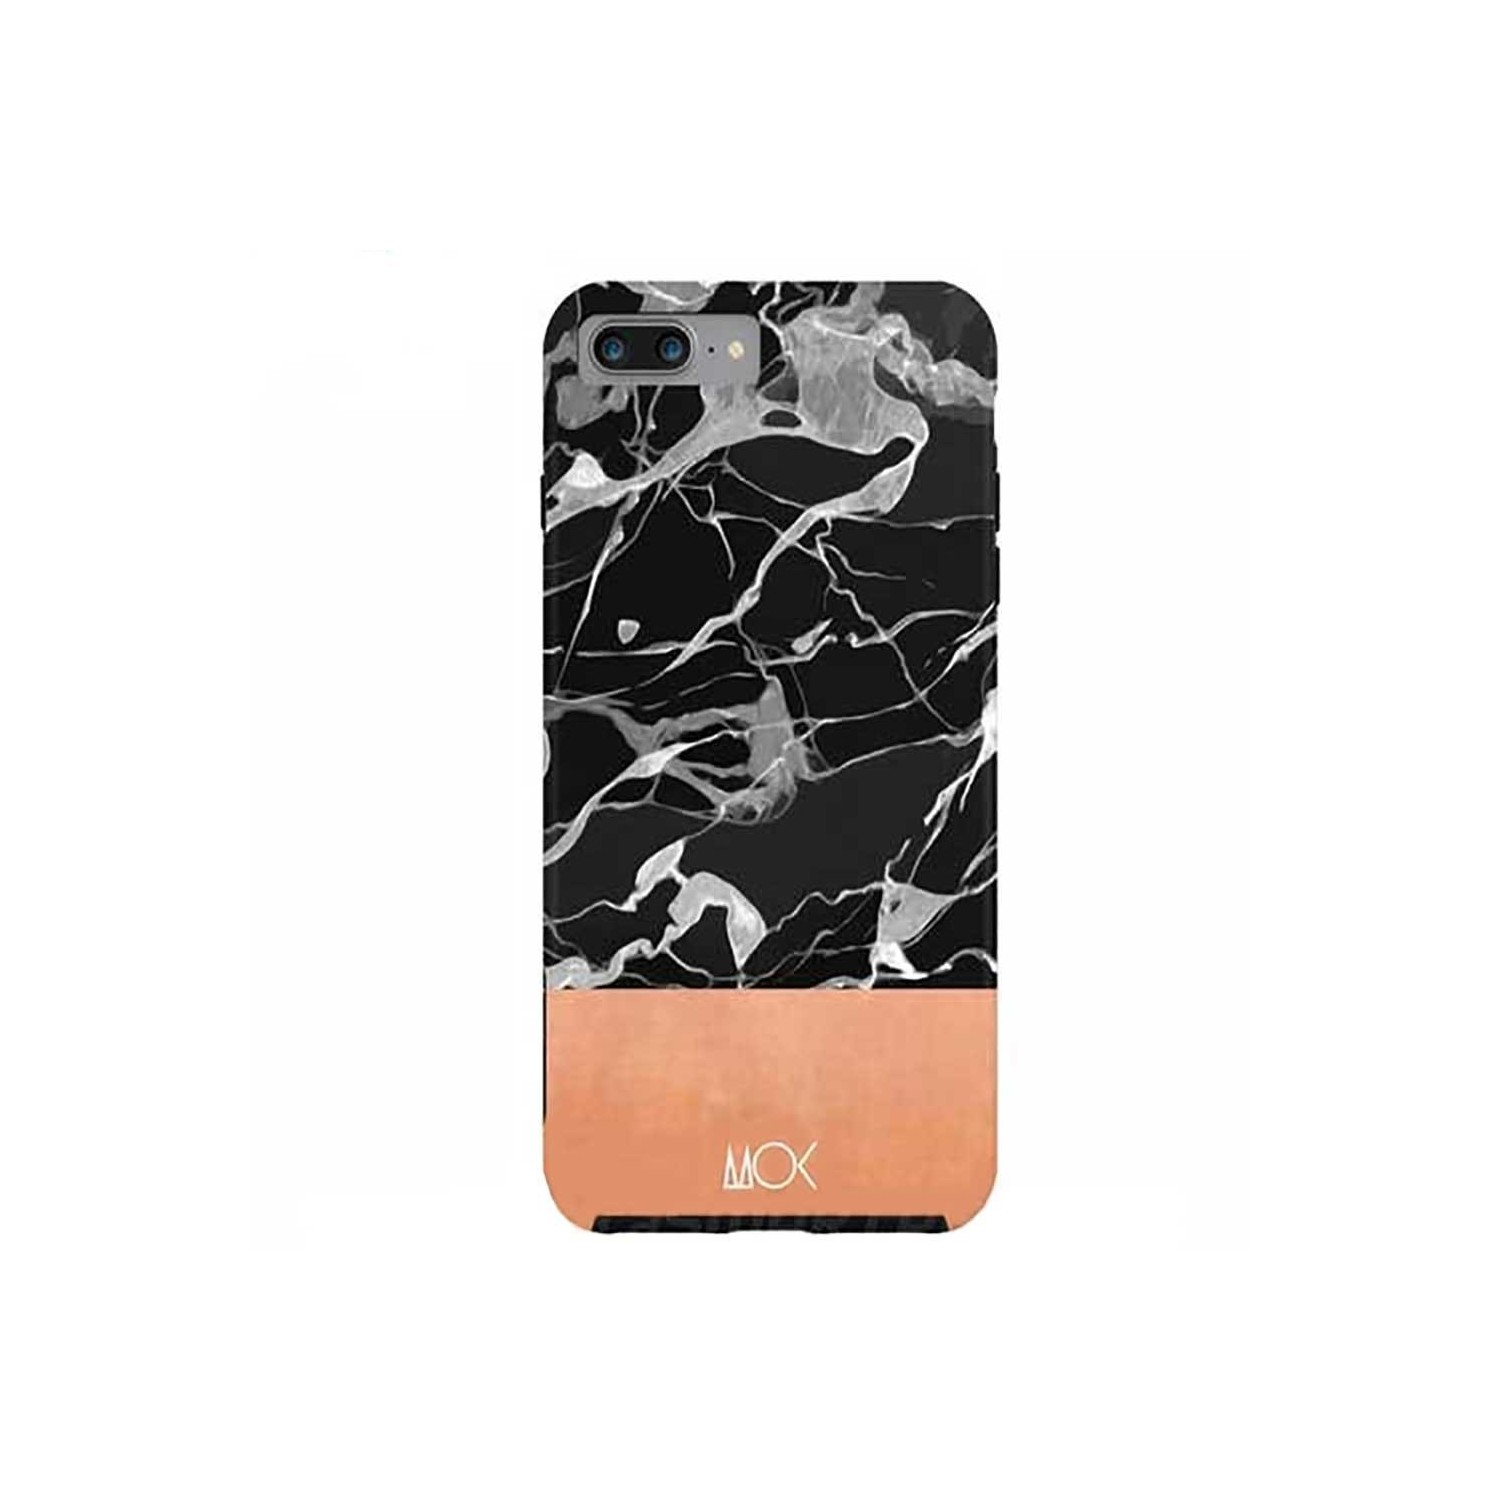 Case -  ArtsCase StrongFit for iPhone 7 PLUS Black Marble by MOK